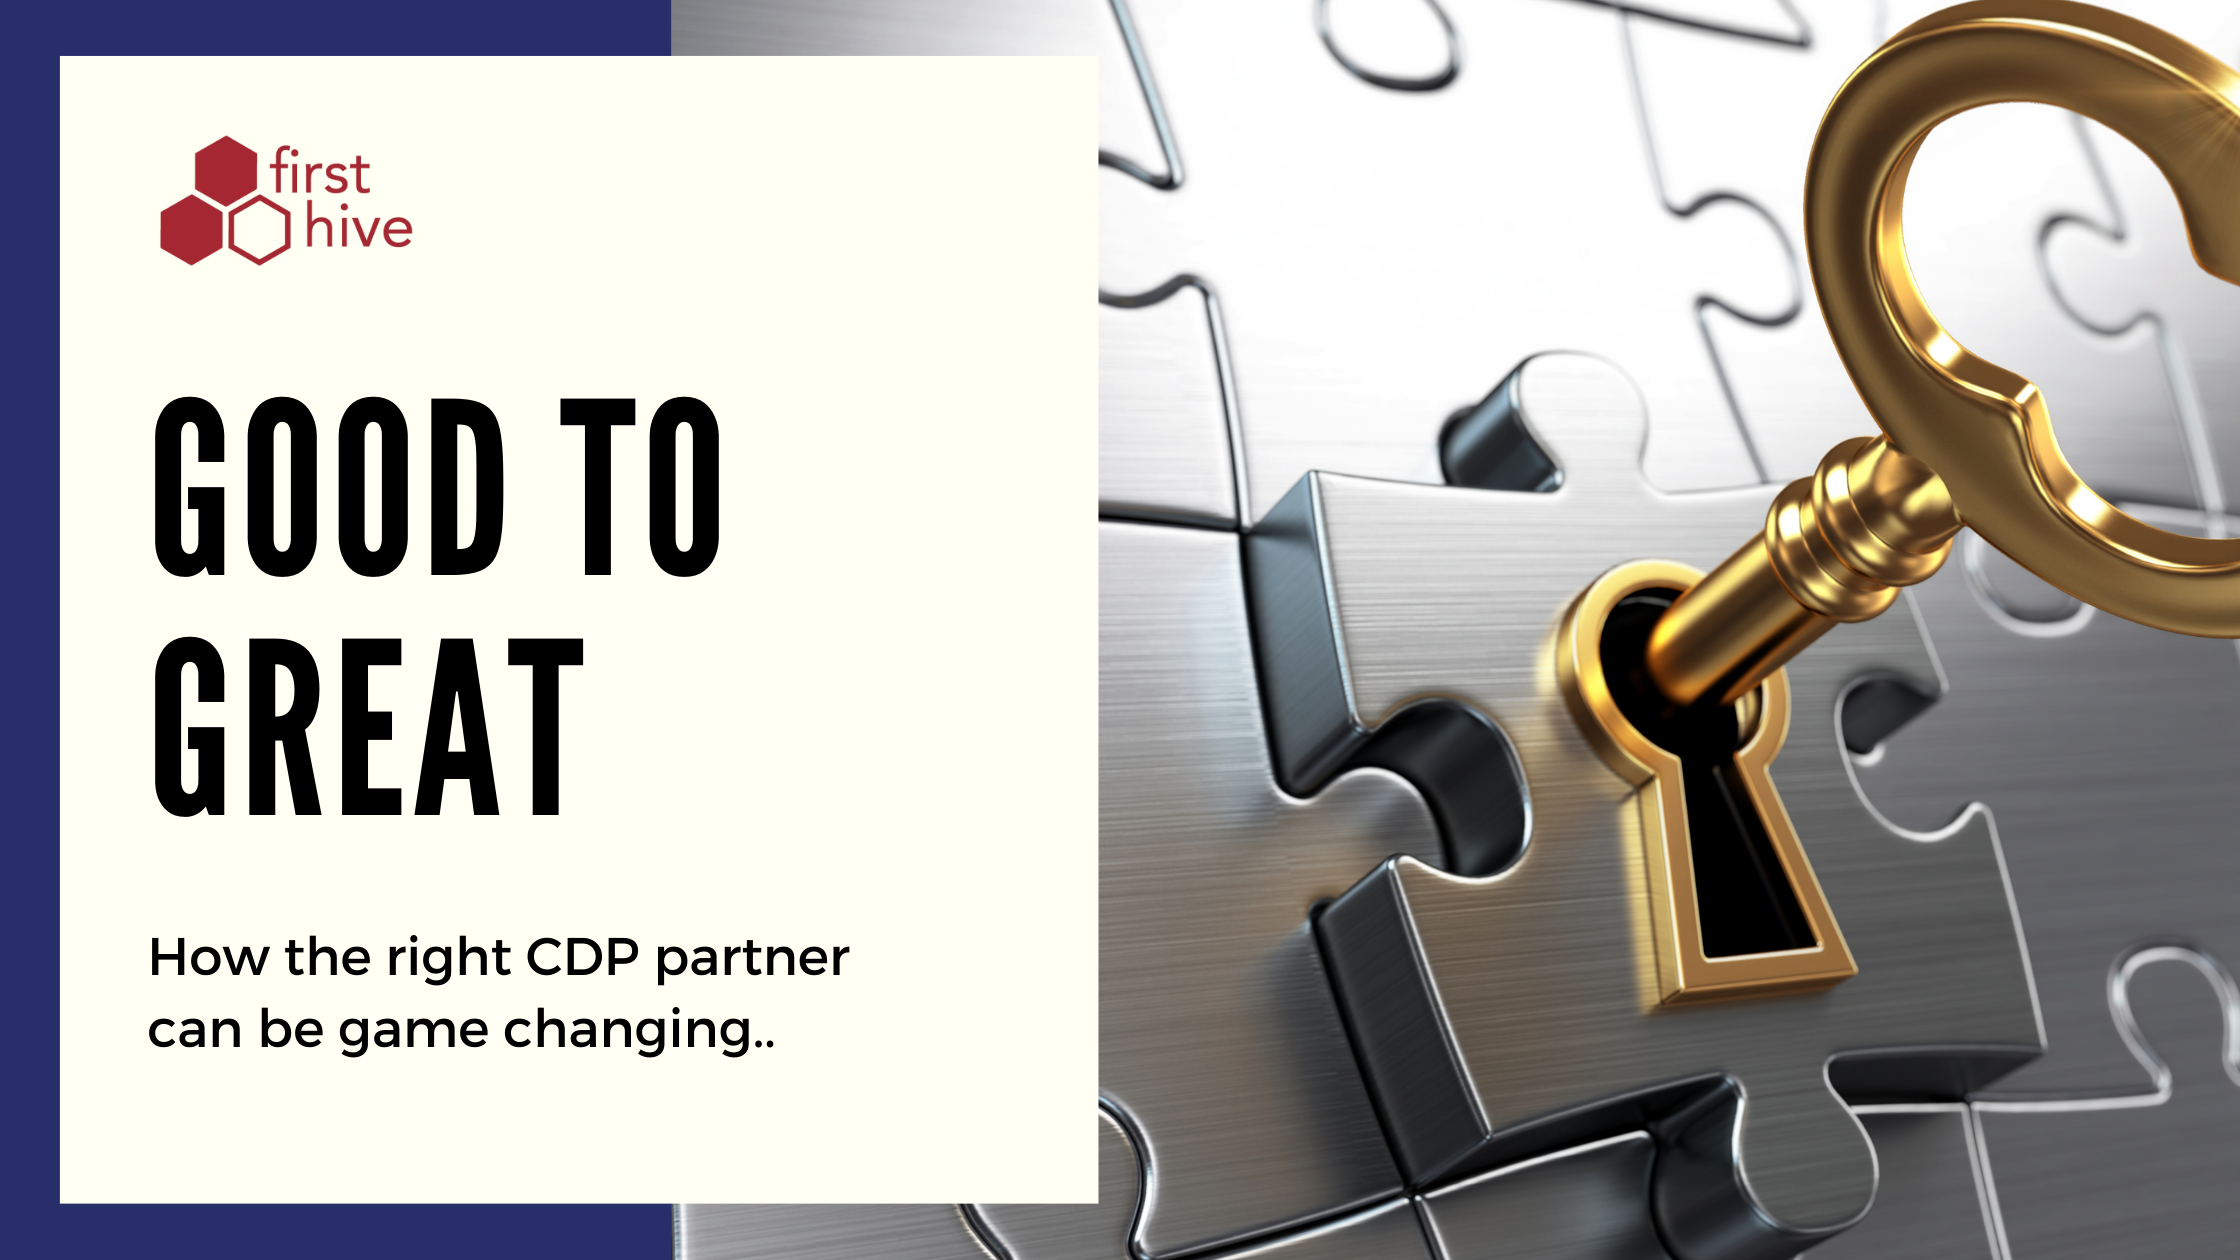 Good to Great: How the right CDP Partner can be Game-Changing?